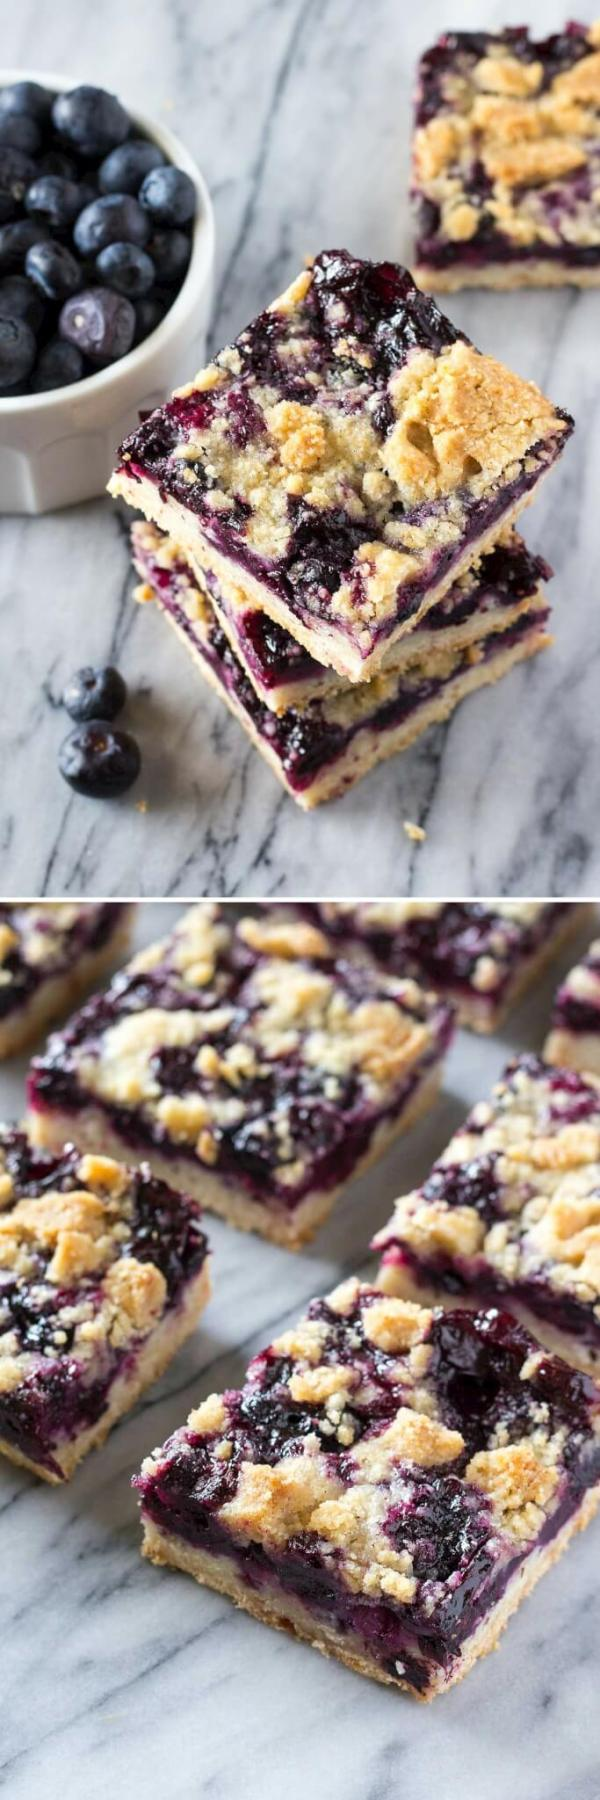 Blueberry Crumble Bars Just So Tasty